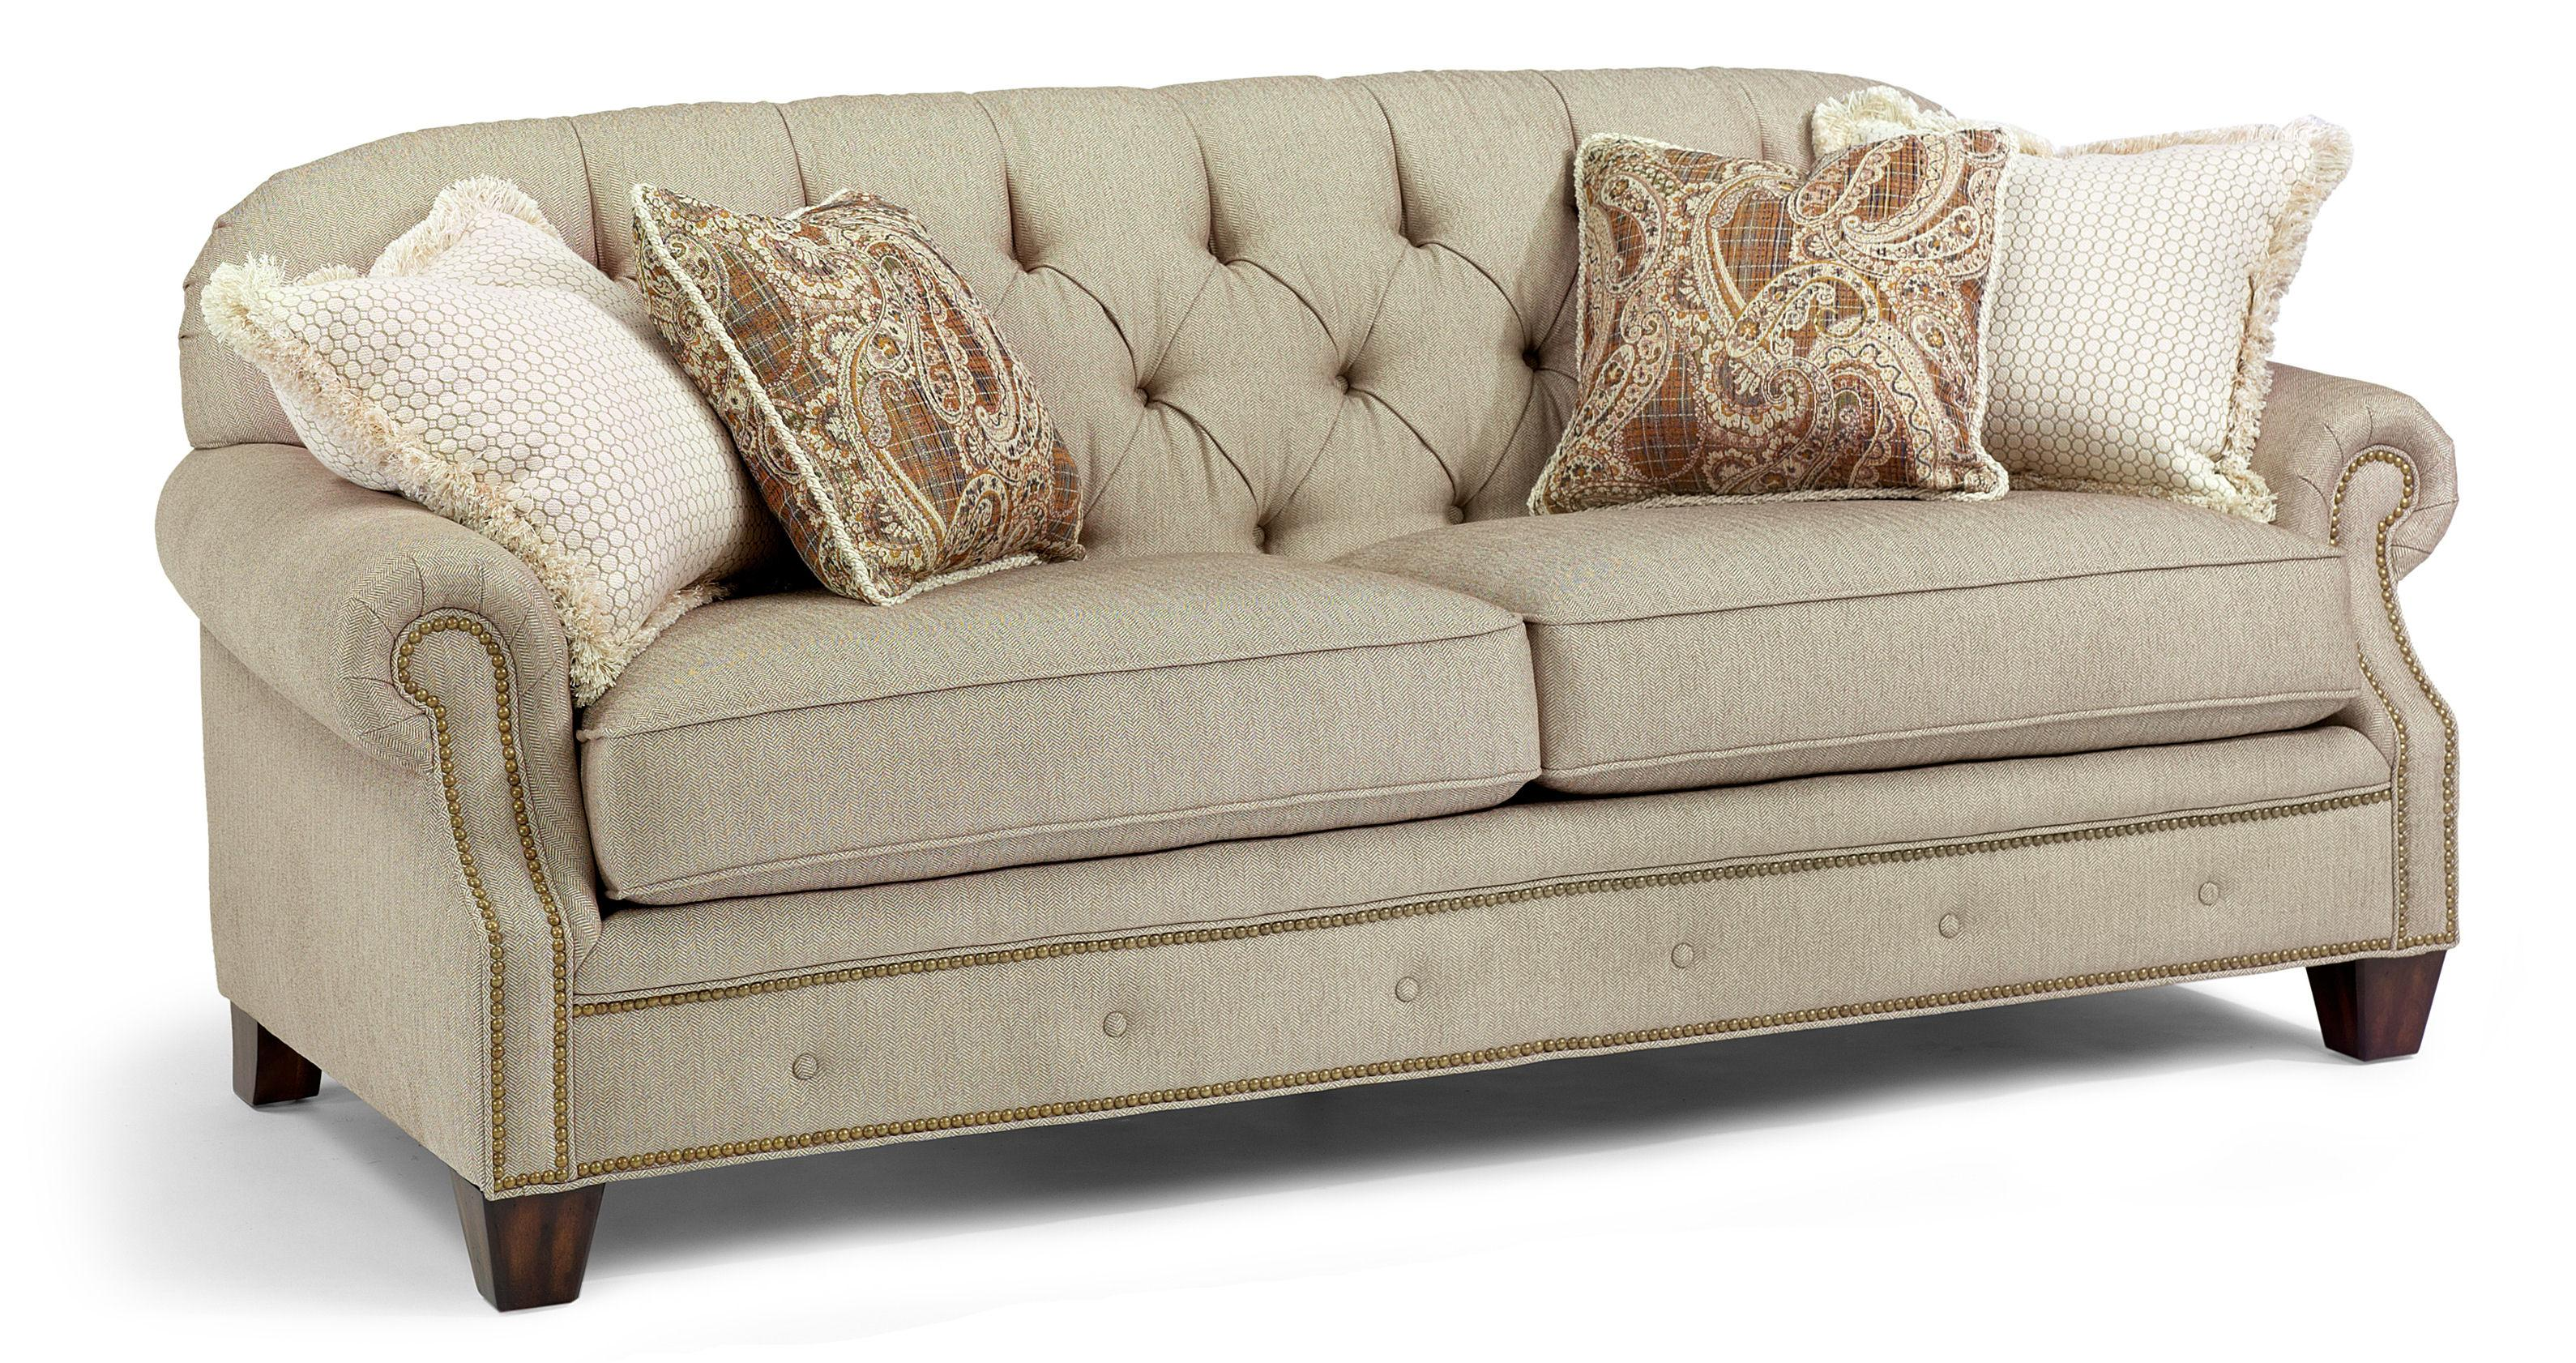 Flexsteel Champion Transitional On Tufted Sofa With Rolled Arms And Nailheads